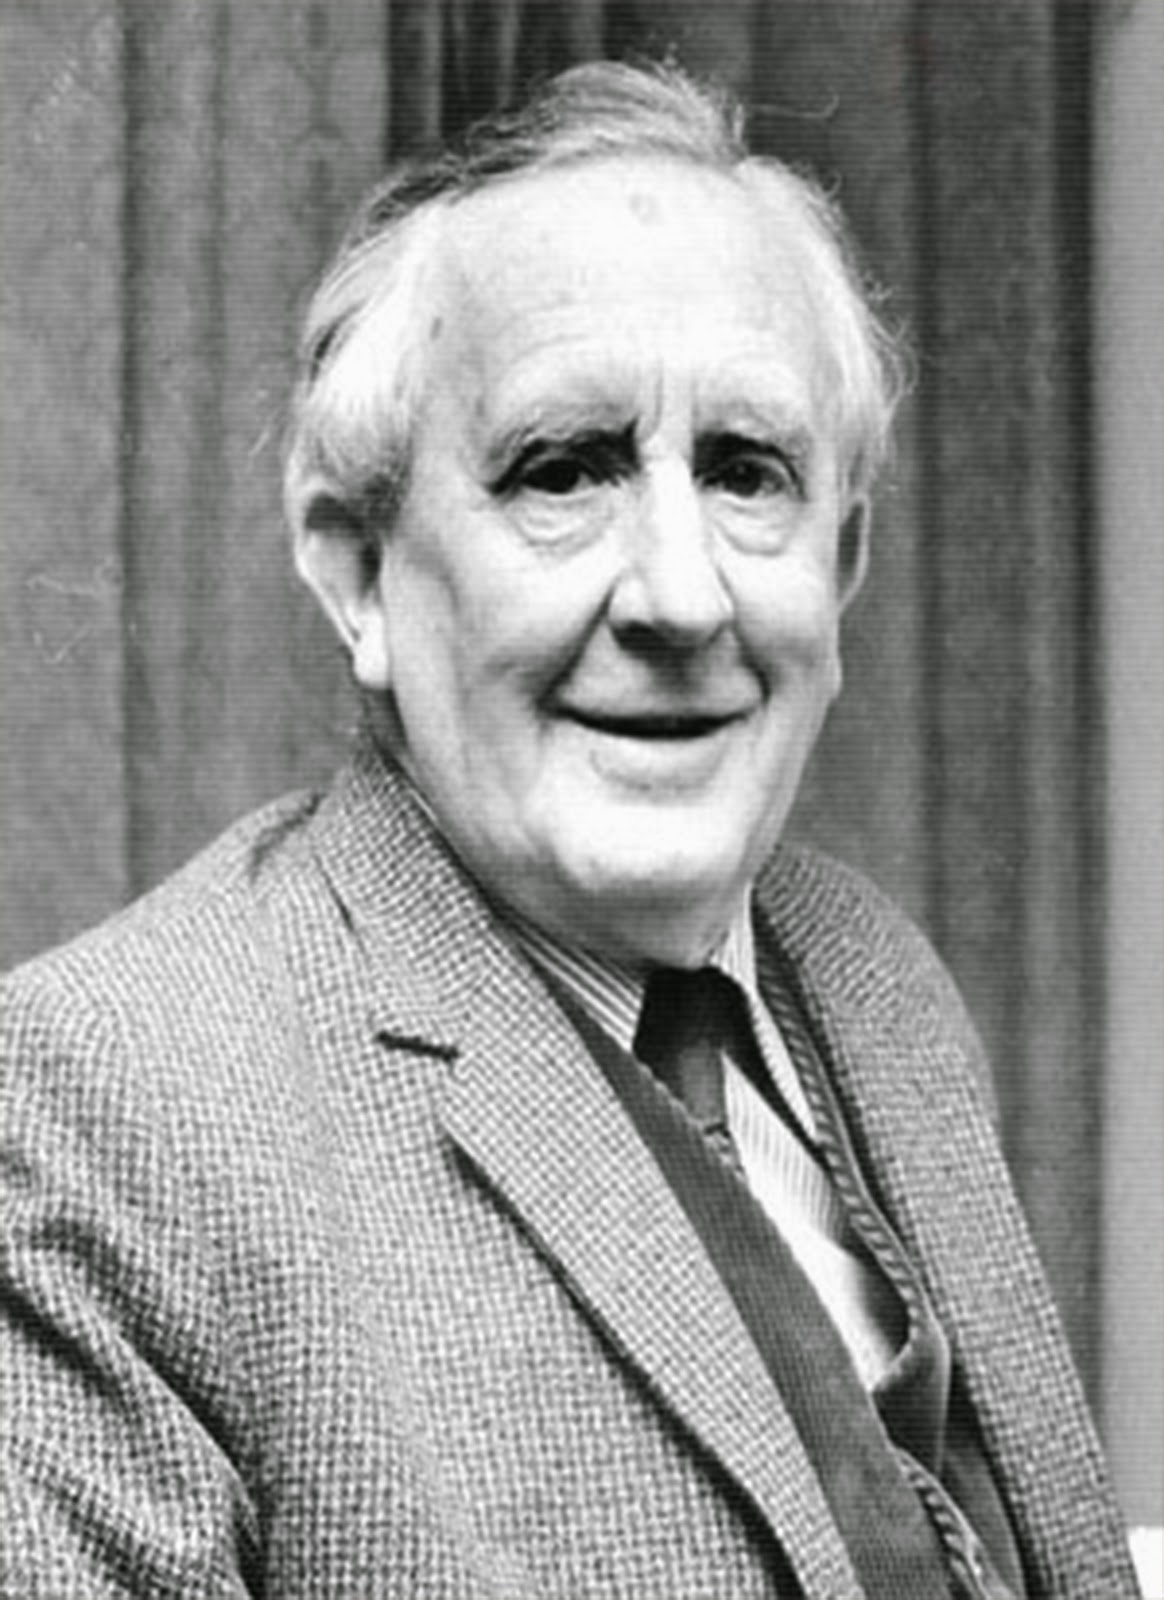 biography of jrr tolkien essay Jrr tolkien my selection for this project was jrr tolkien biography of jrr tolkien essay good verses evil jrr tolkien essay.